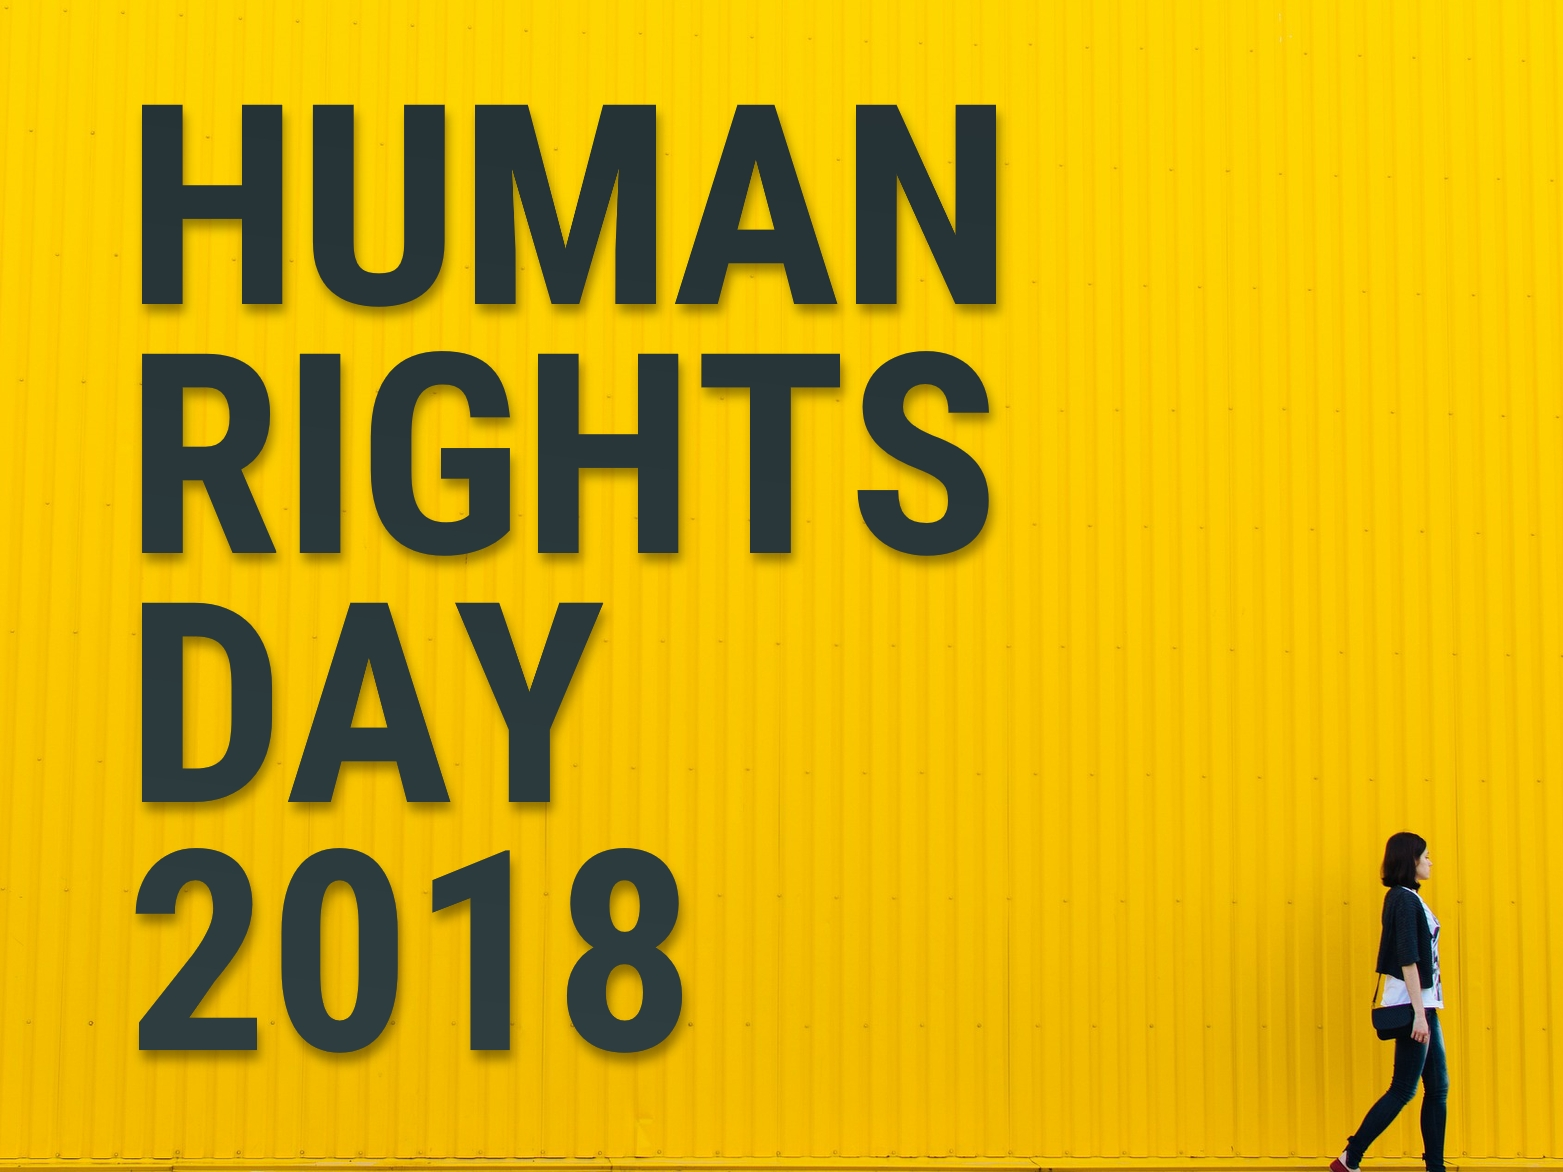 RESOURCES: Human Rights Day 2018